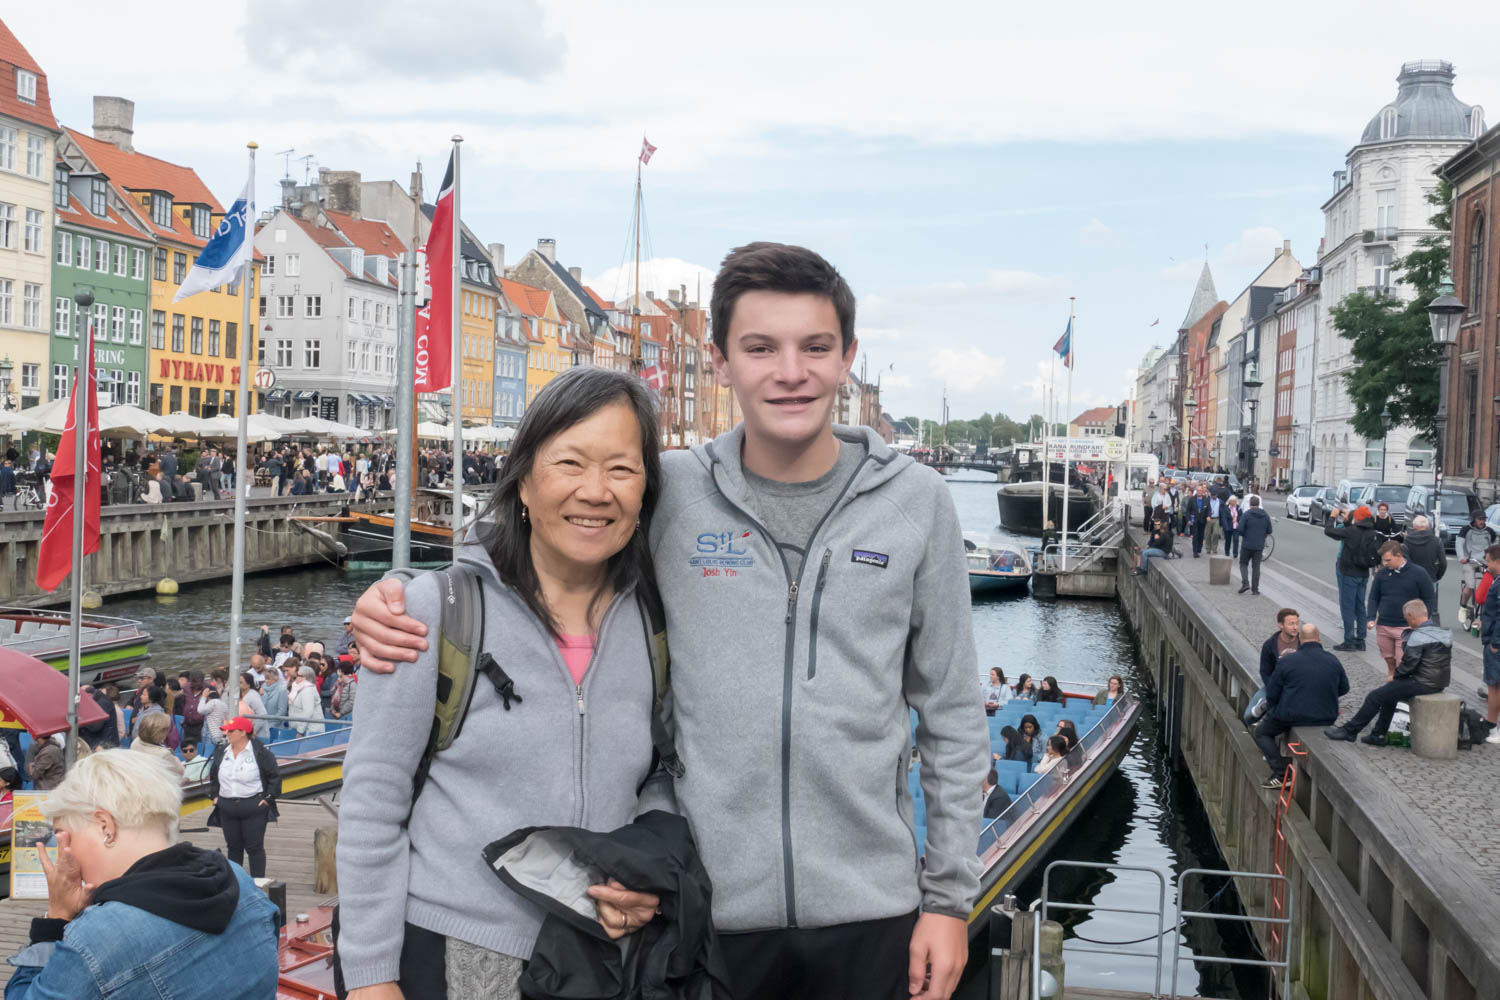 Nyhavn, a scenic but touristy area